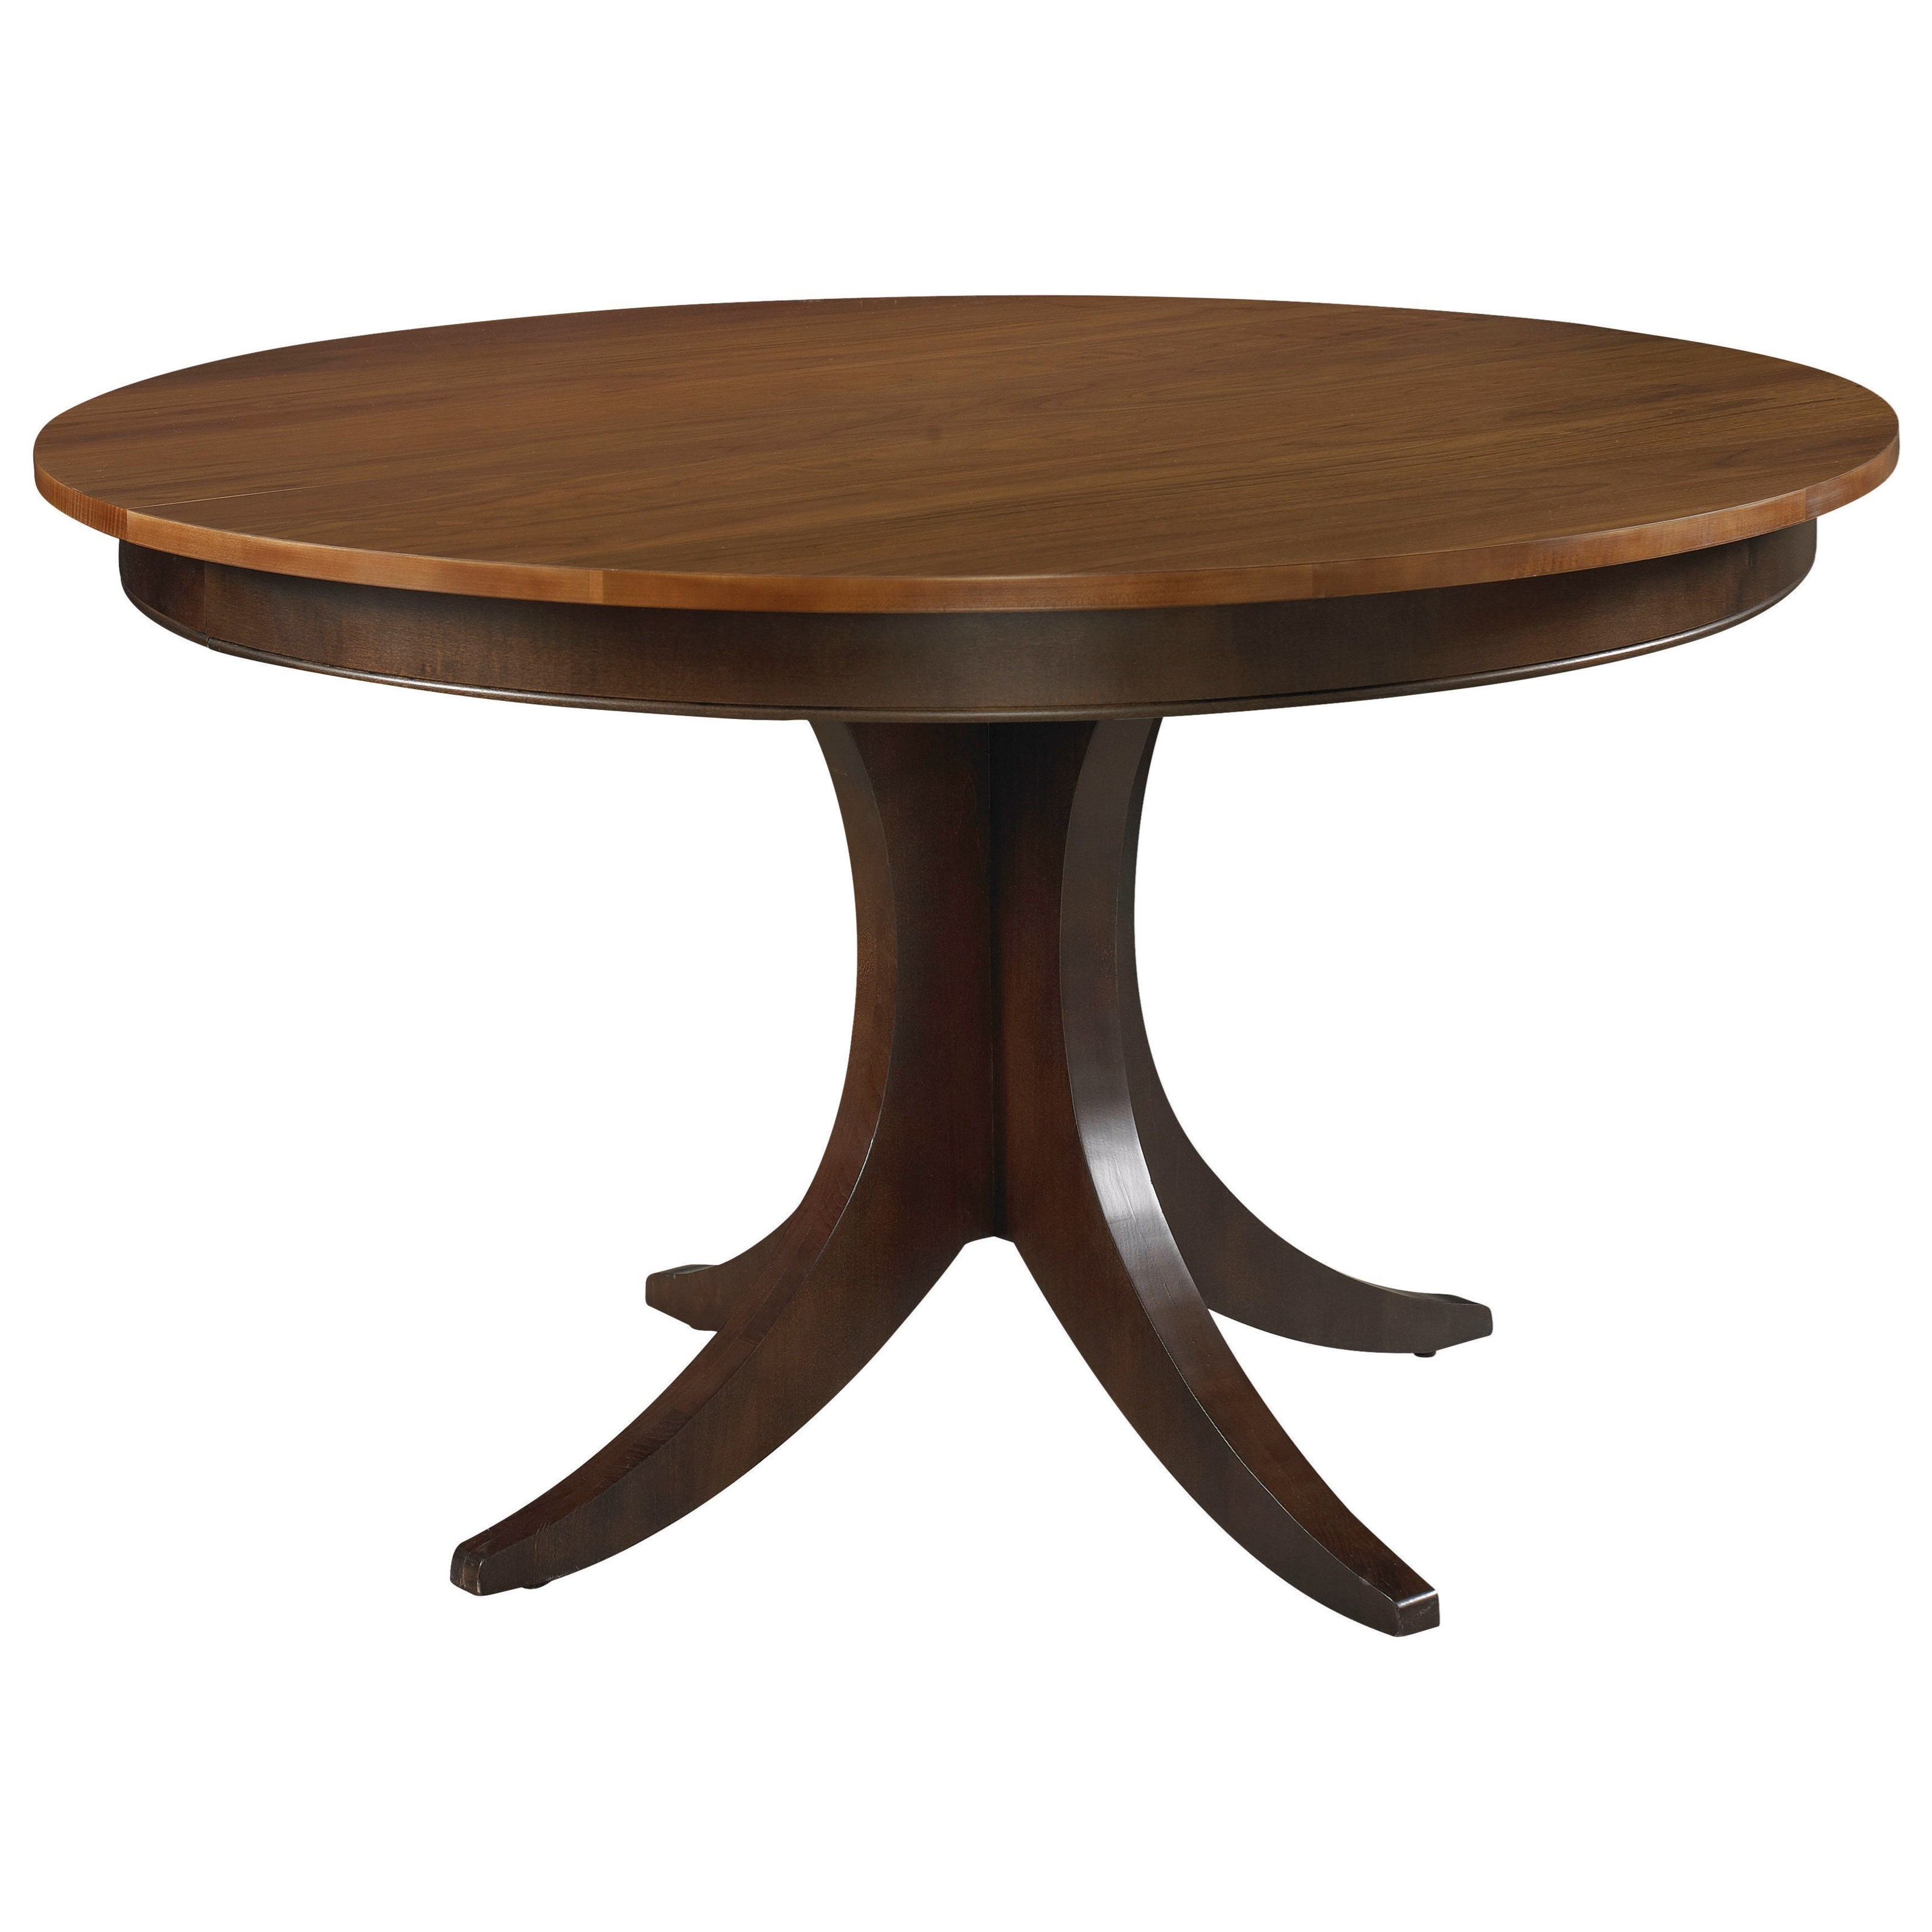 Custom Dining Customizable Round Pedestal Table by Bassett at Bassett of Cool Springs